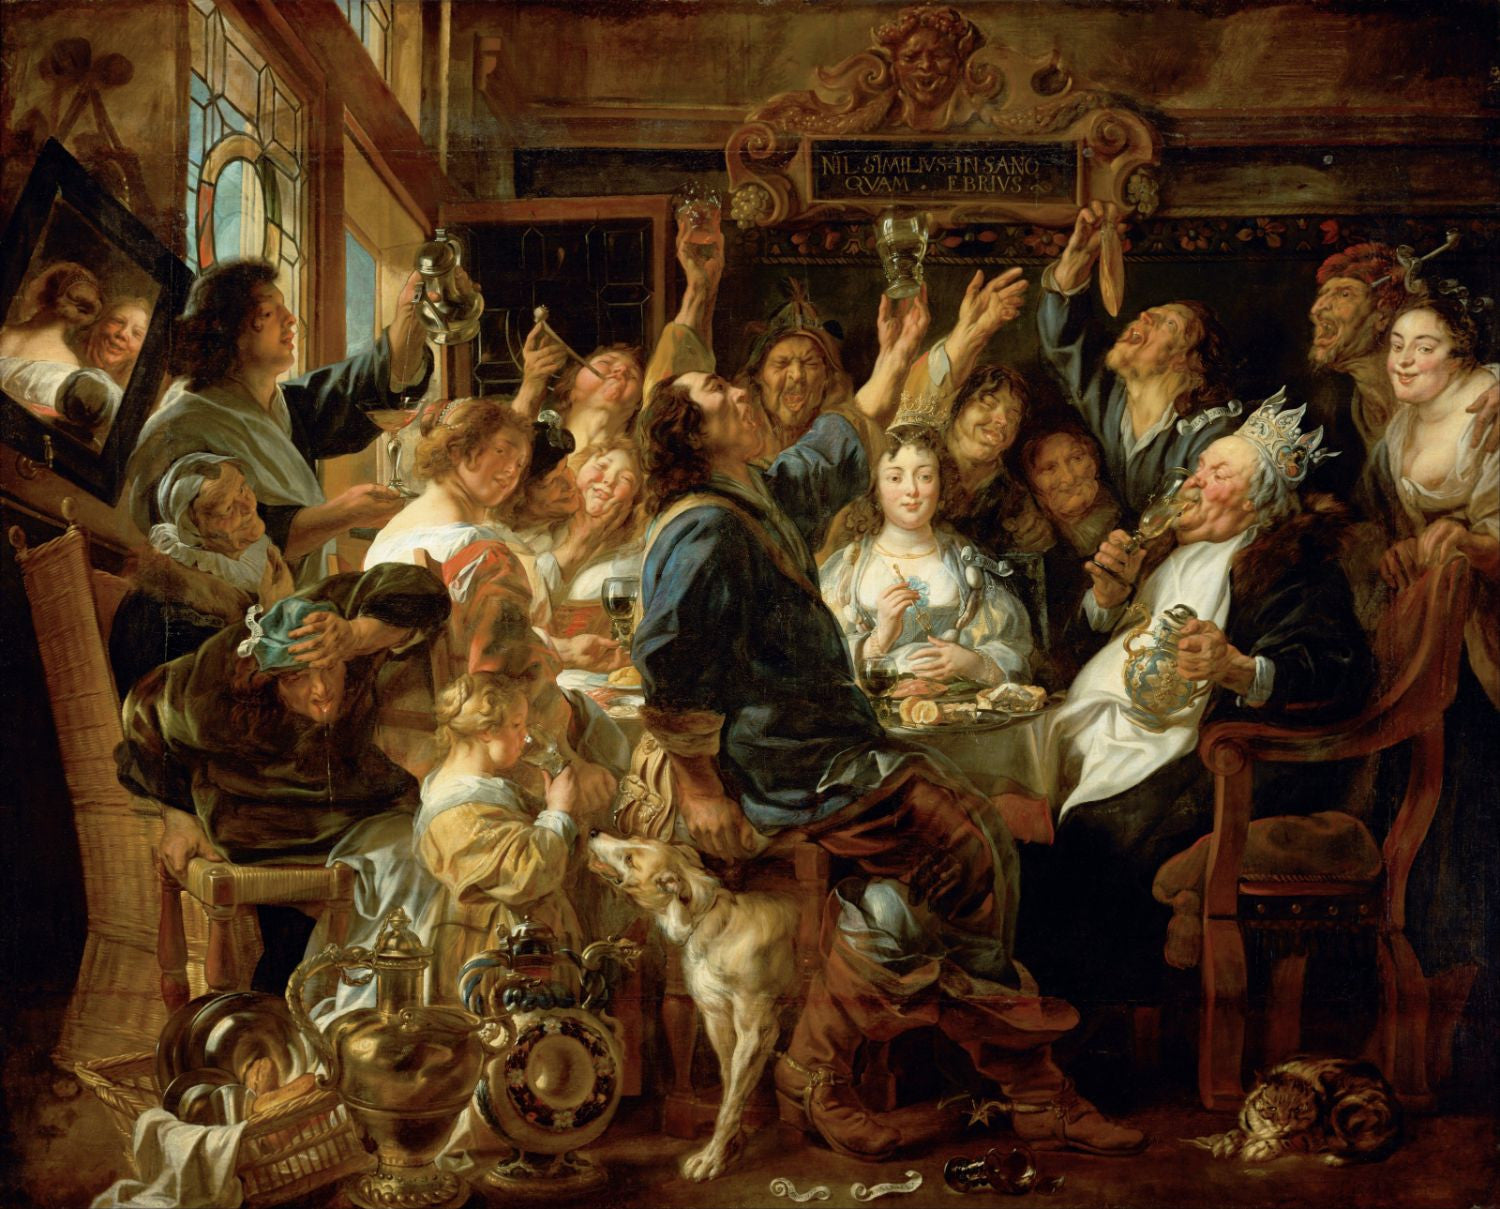 Jacob Jordaens | Buy Posters, Frames, Canvas, Digital Art & Large Size Prints